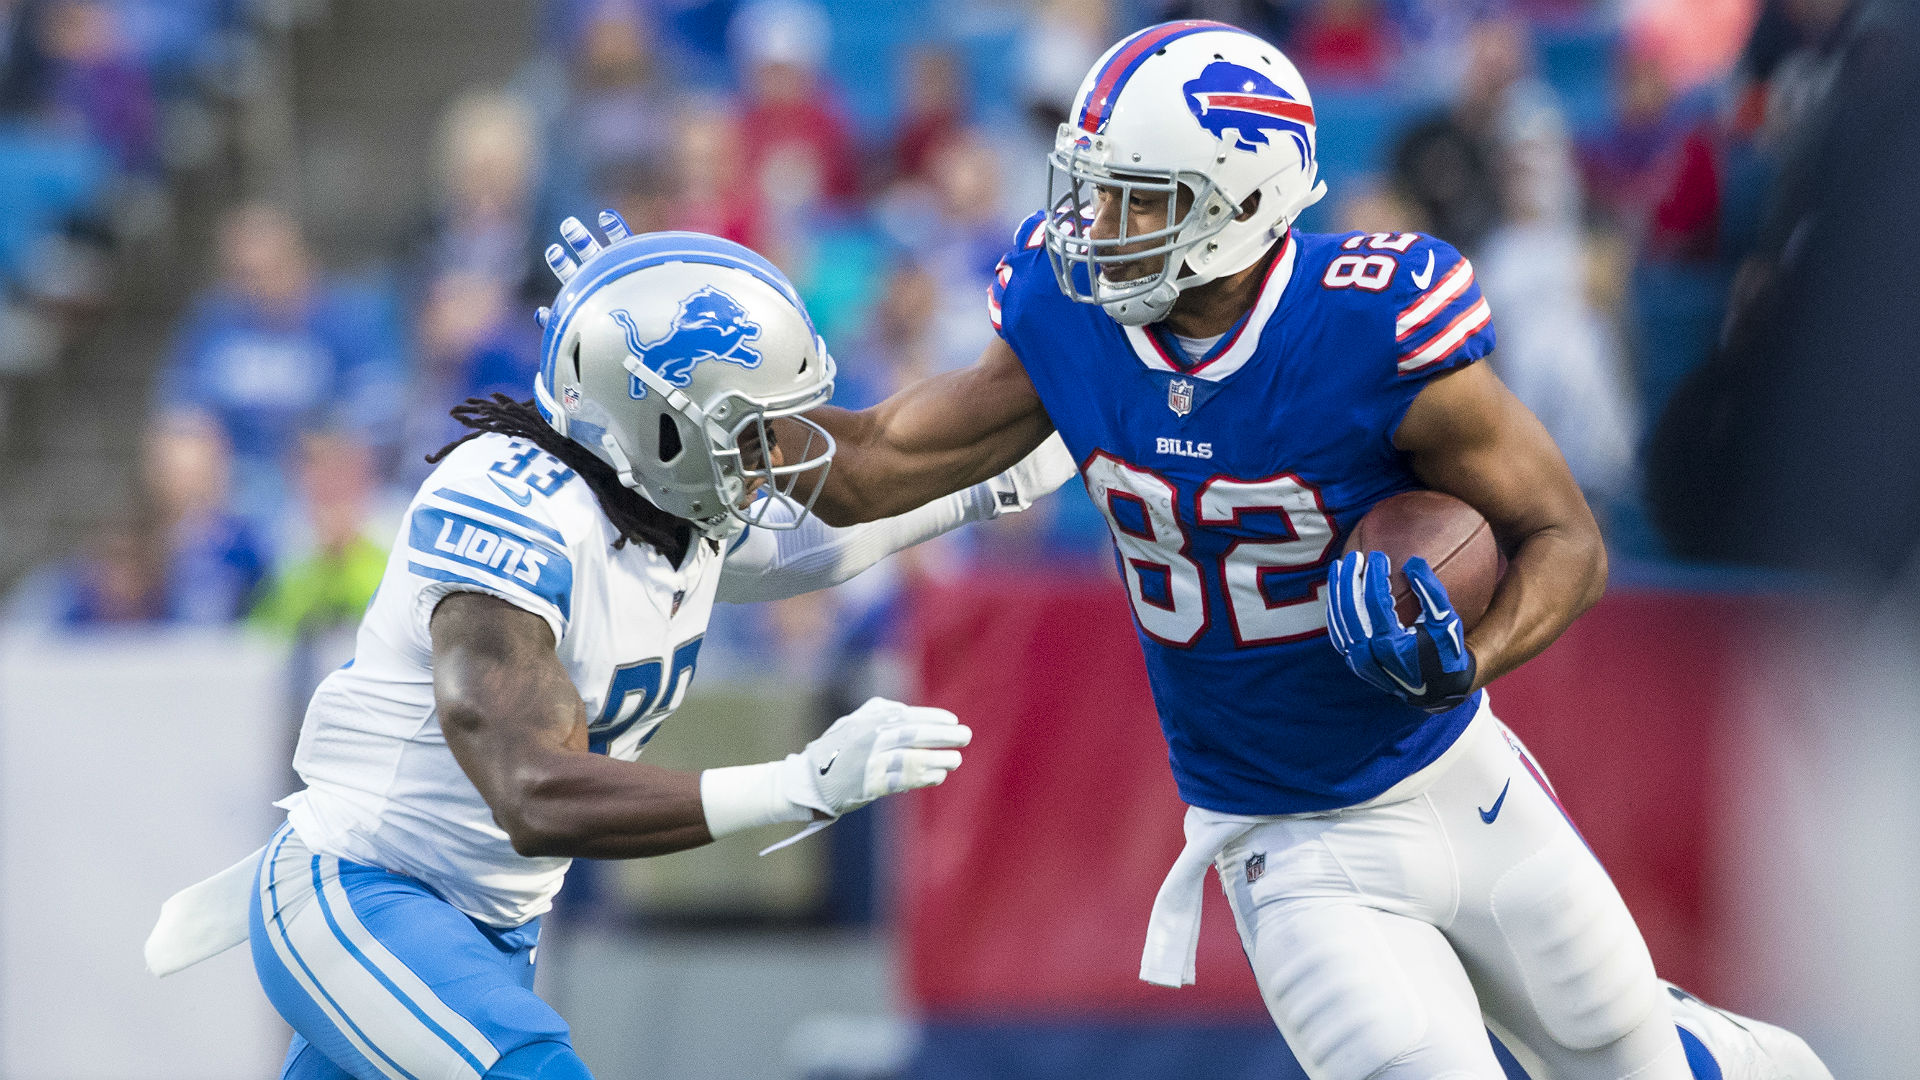 Logan Thomas thankful for support of Bills' organization, teammates